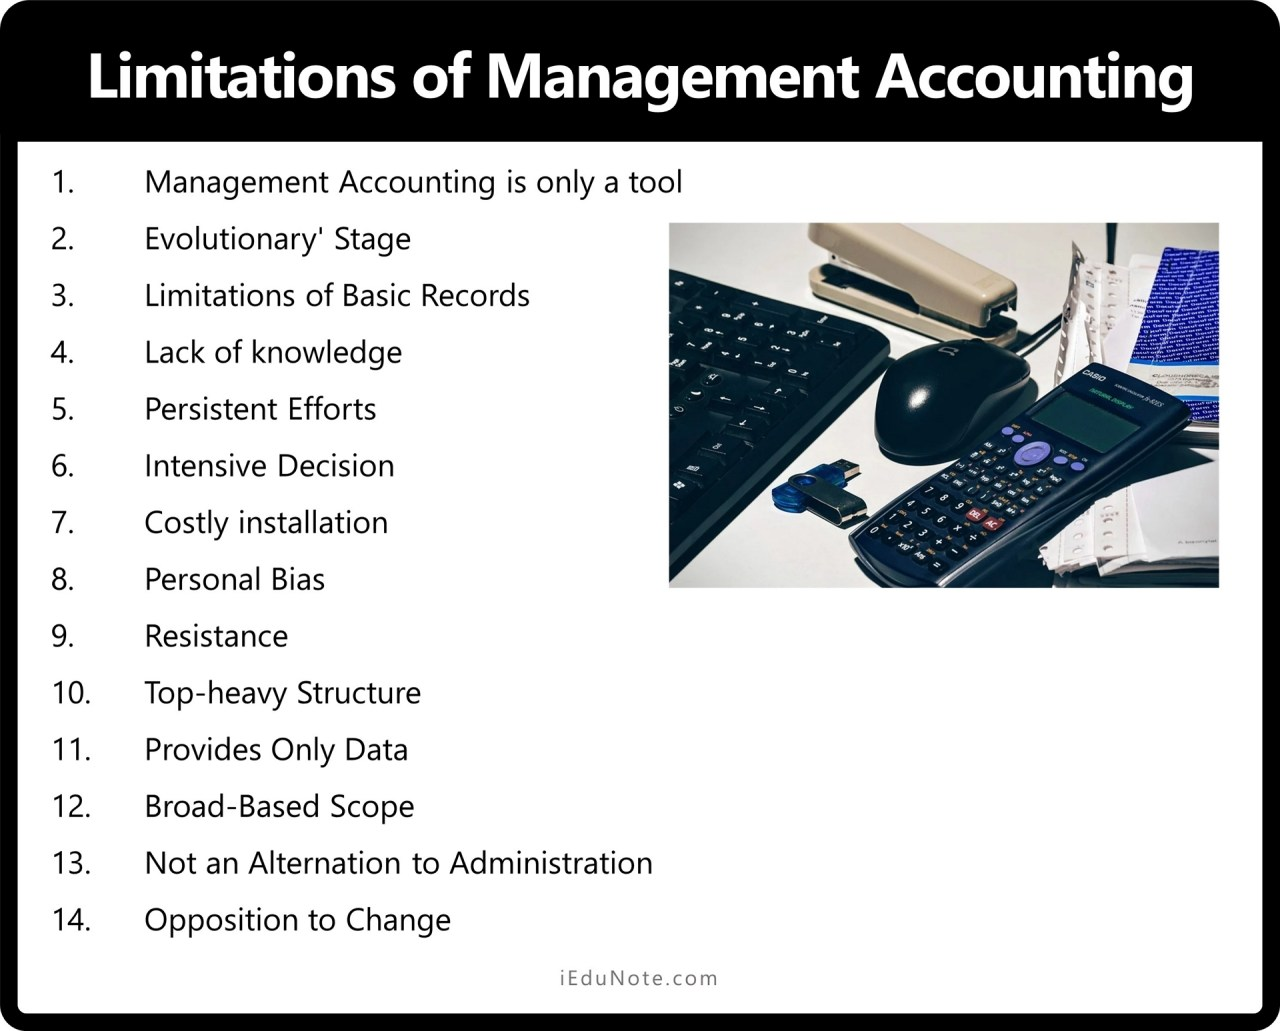 Limitations of Management Accounting